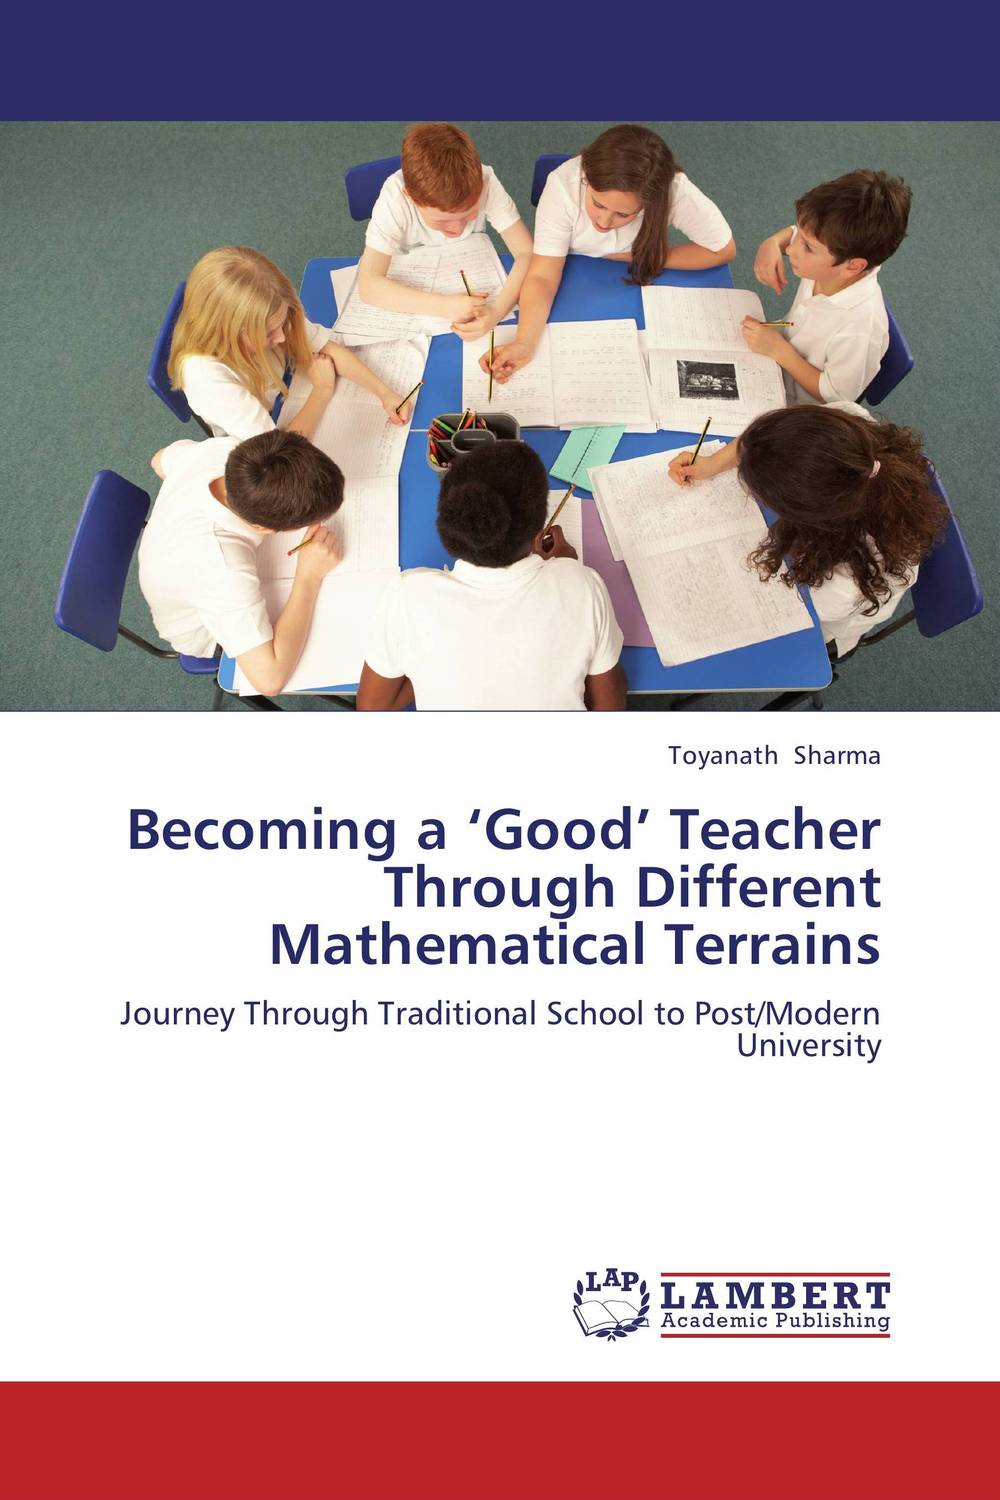 Becoming a 'Good' Teacher Through Different Mathematical Terrains